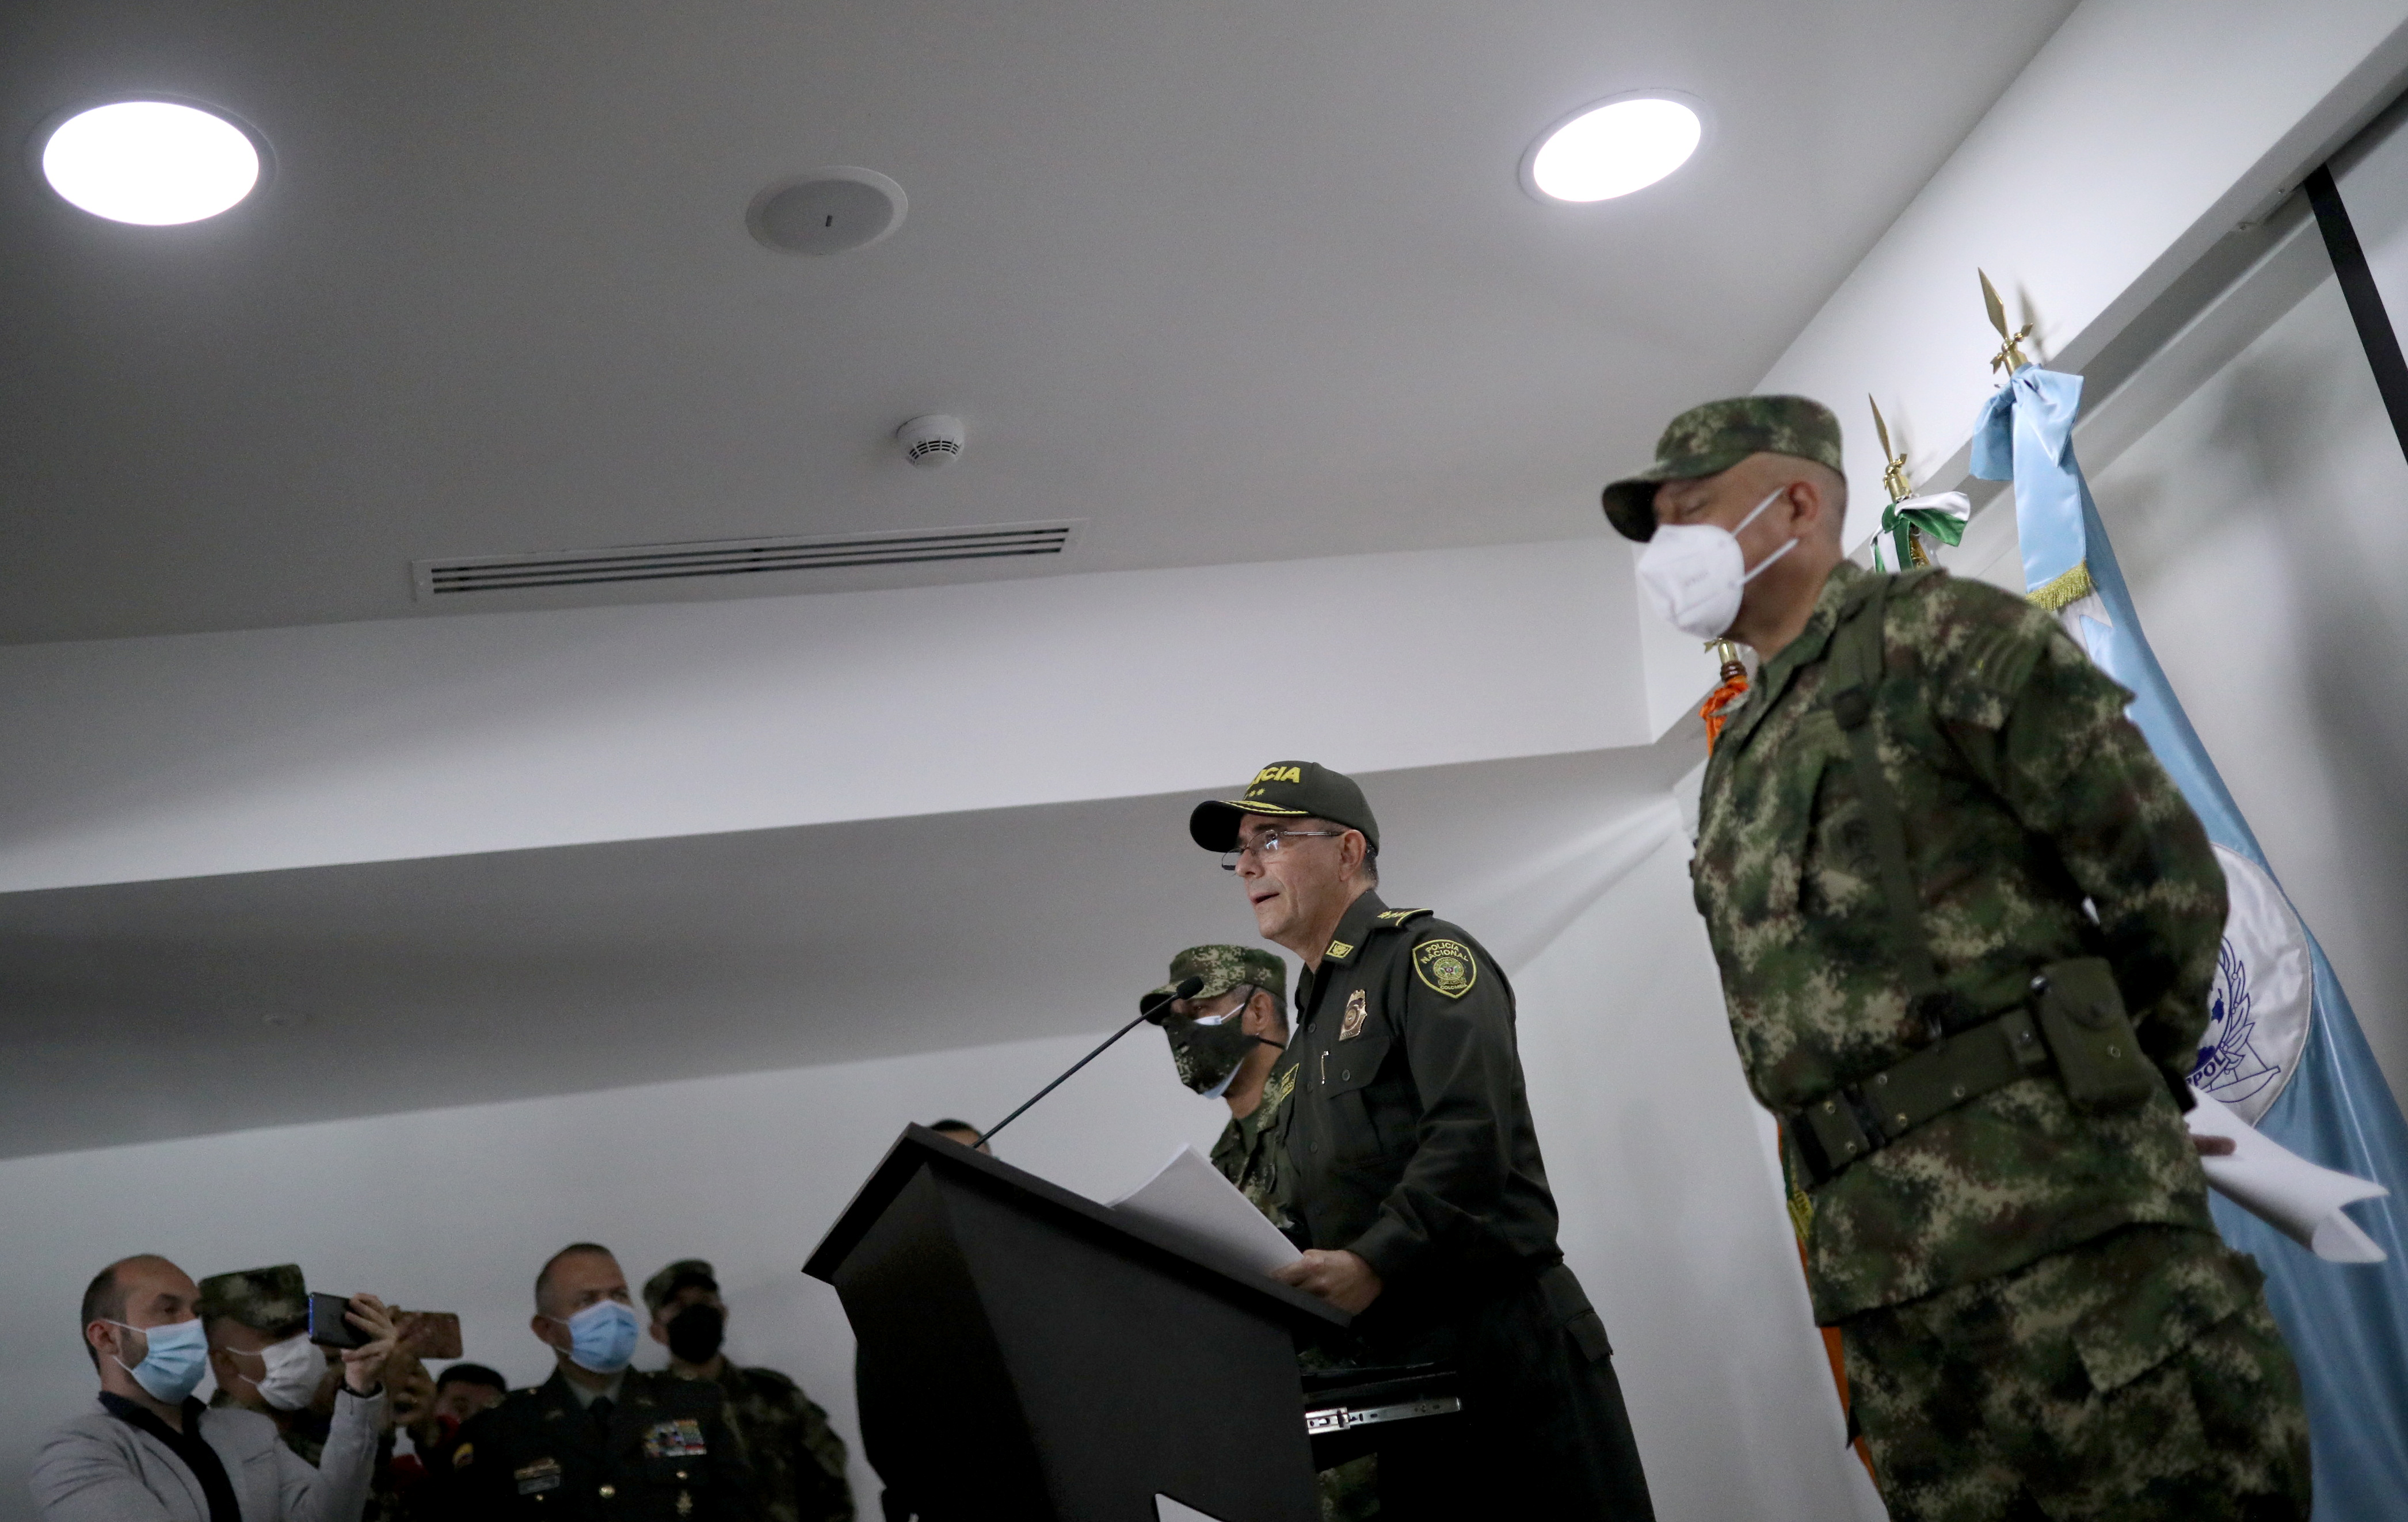 Colombia's National Police Director General Jorge Luis Vargas flanked by Commander of the Colombian Military Forces, General Luis Fernando Navarro, speaks during a news conference about the participation of several Colombians in the assassination of Haitian President Jovenel Moise, in Bogota, Colombia July 9, 2021. REUTERS/Luisa Gonzalez